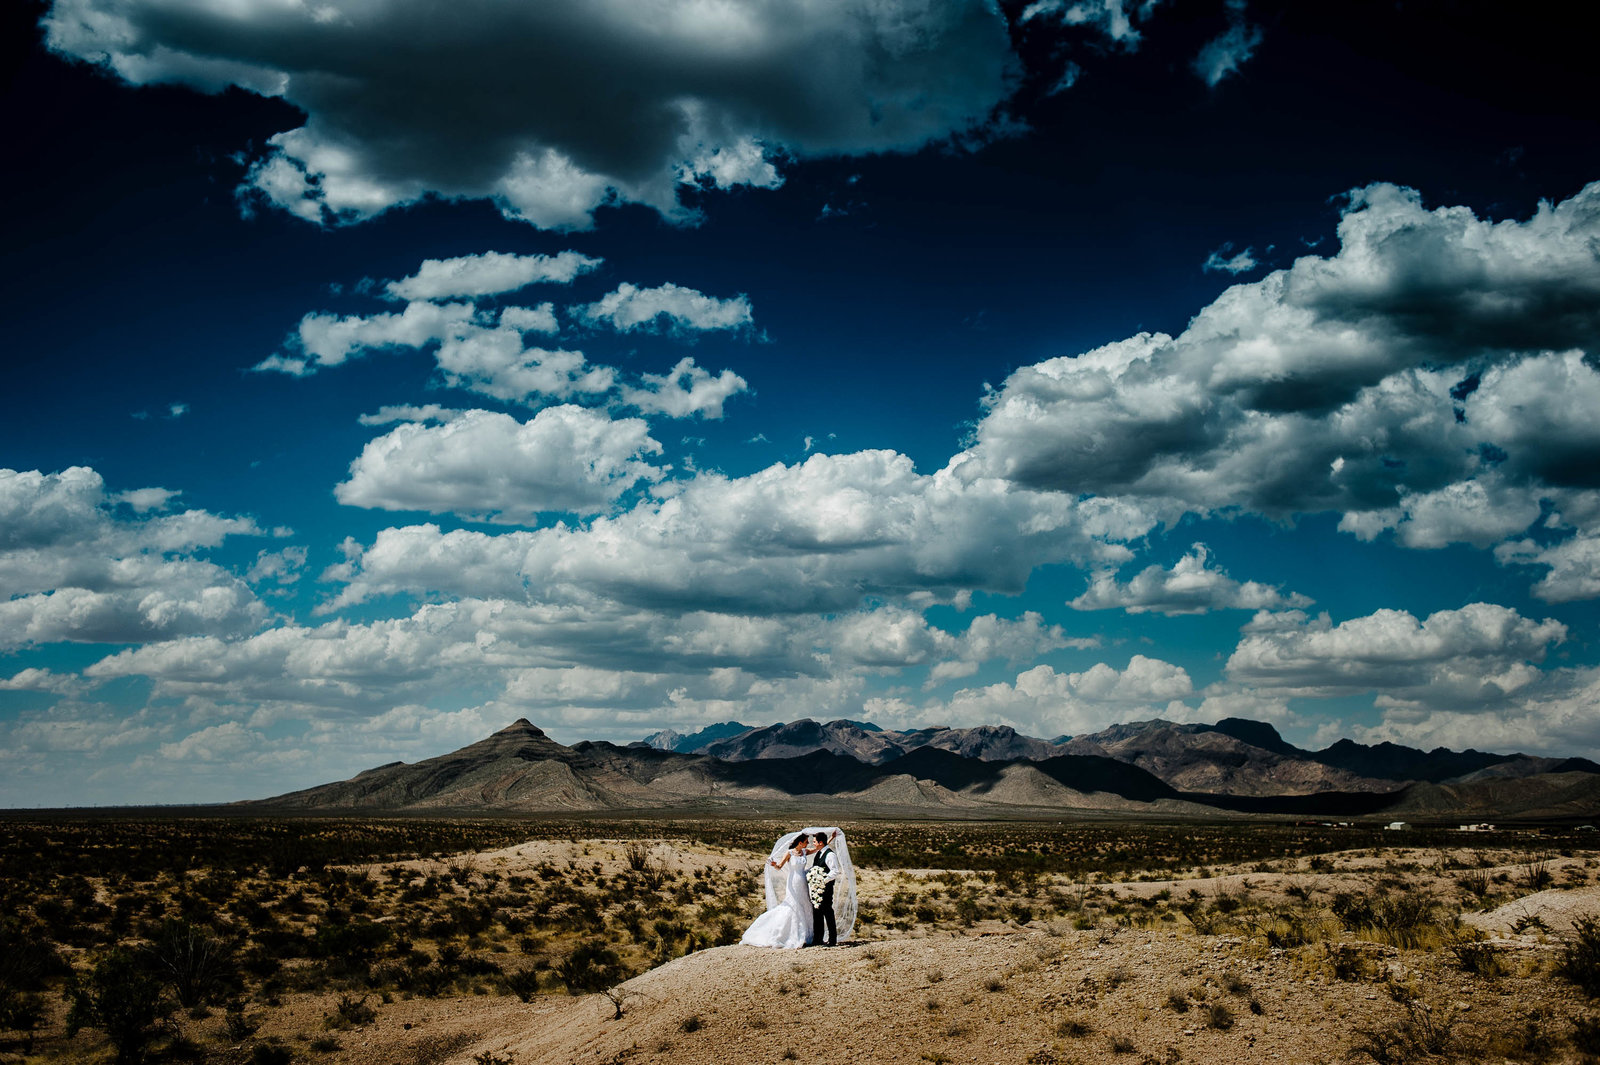 256-El-paso-wedding-photographer-El Paso Wedding Photographer_P34